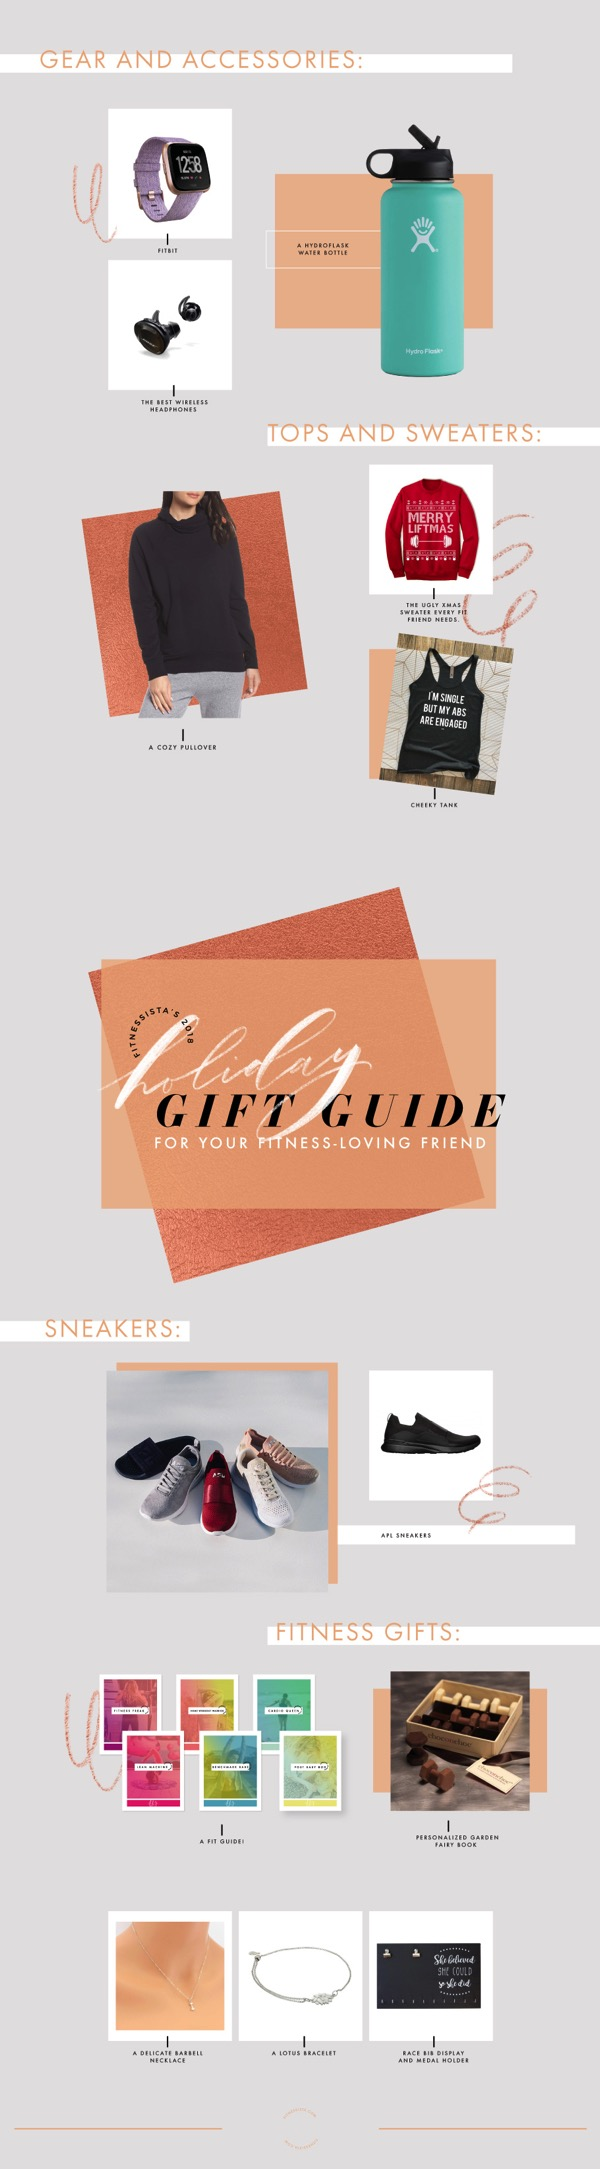 Holiday Gift Guide 2018 for your Fitness Loving Friend